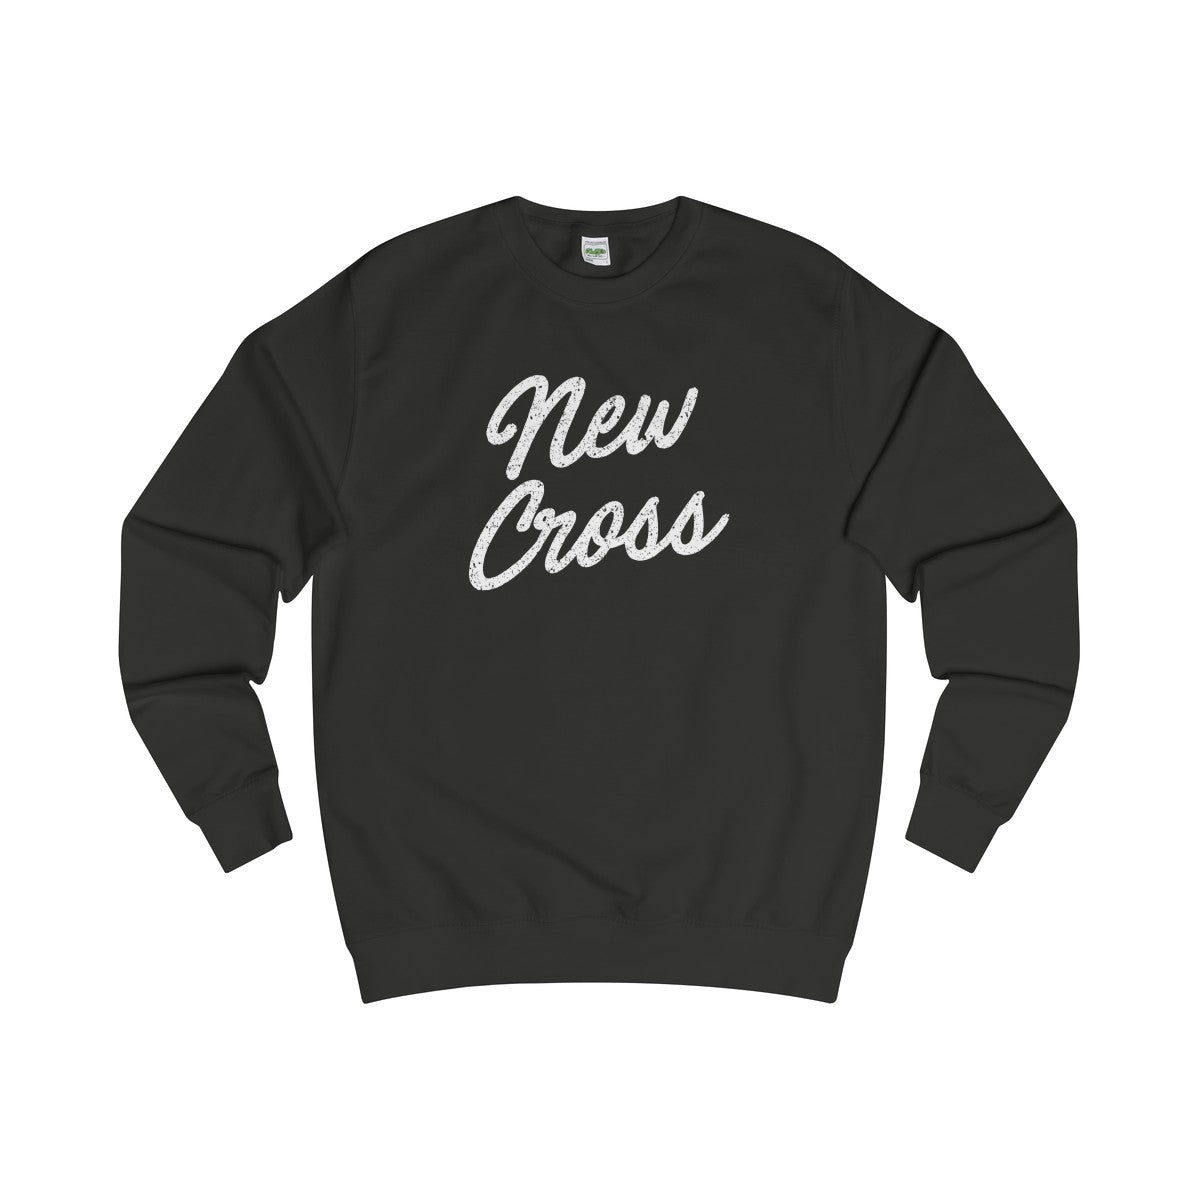 New Cross Scripted Sweater